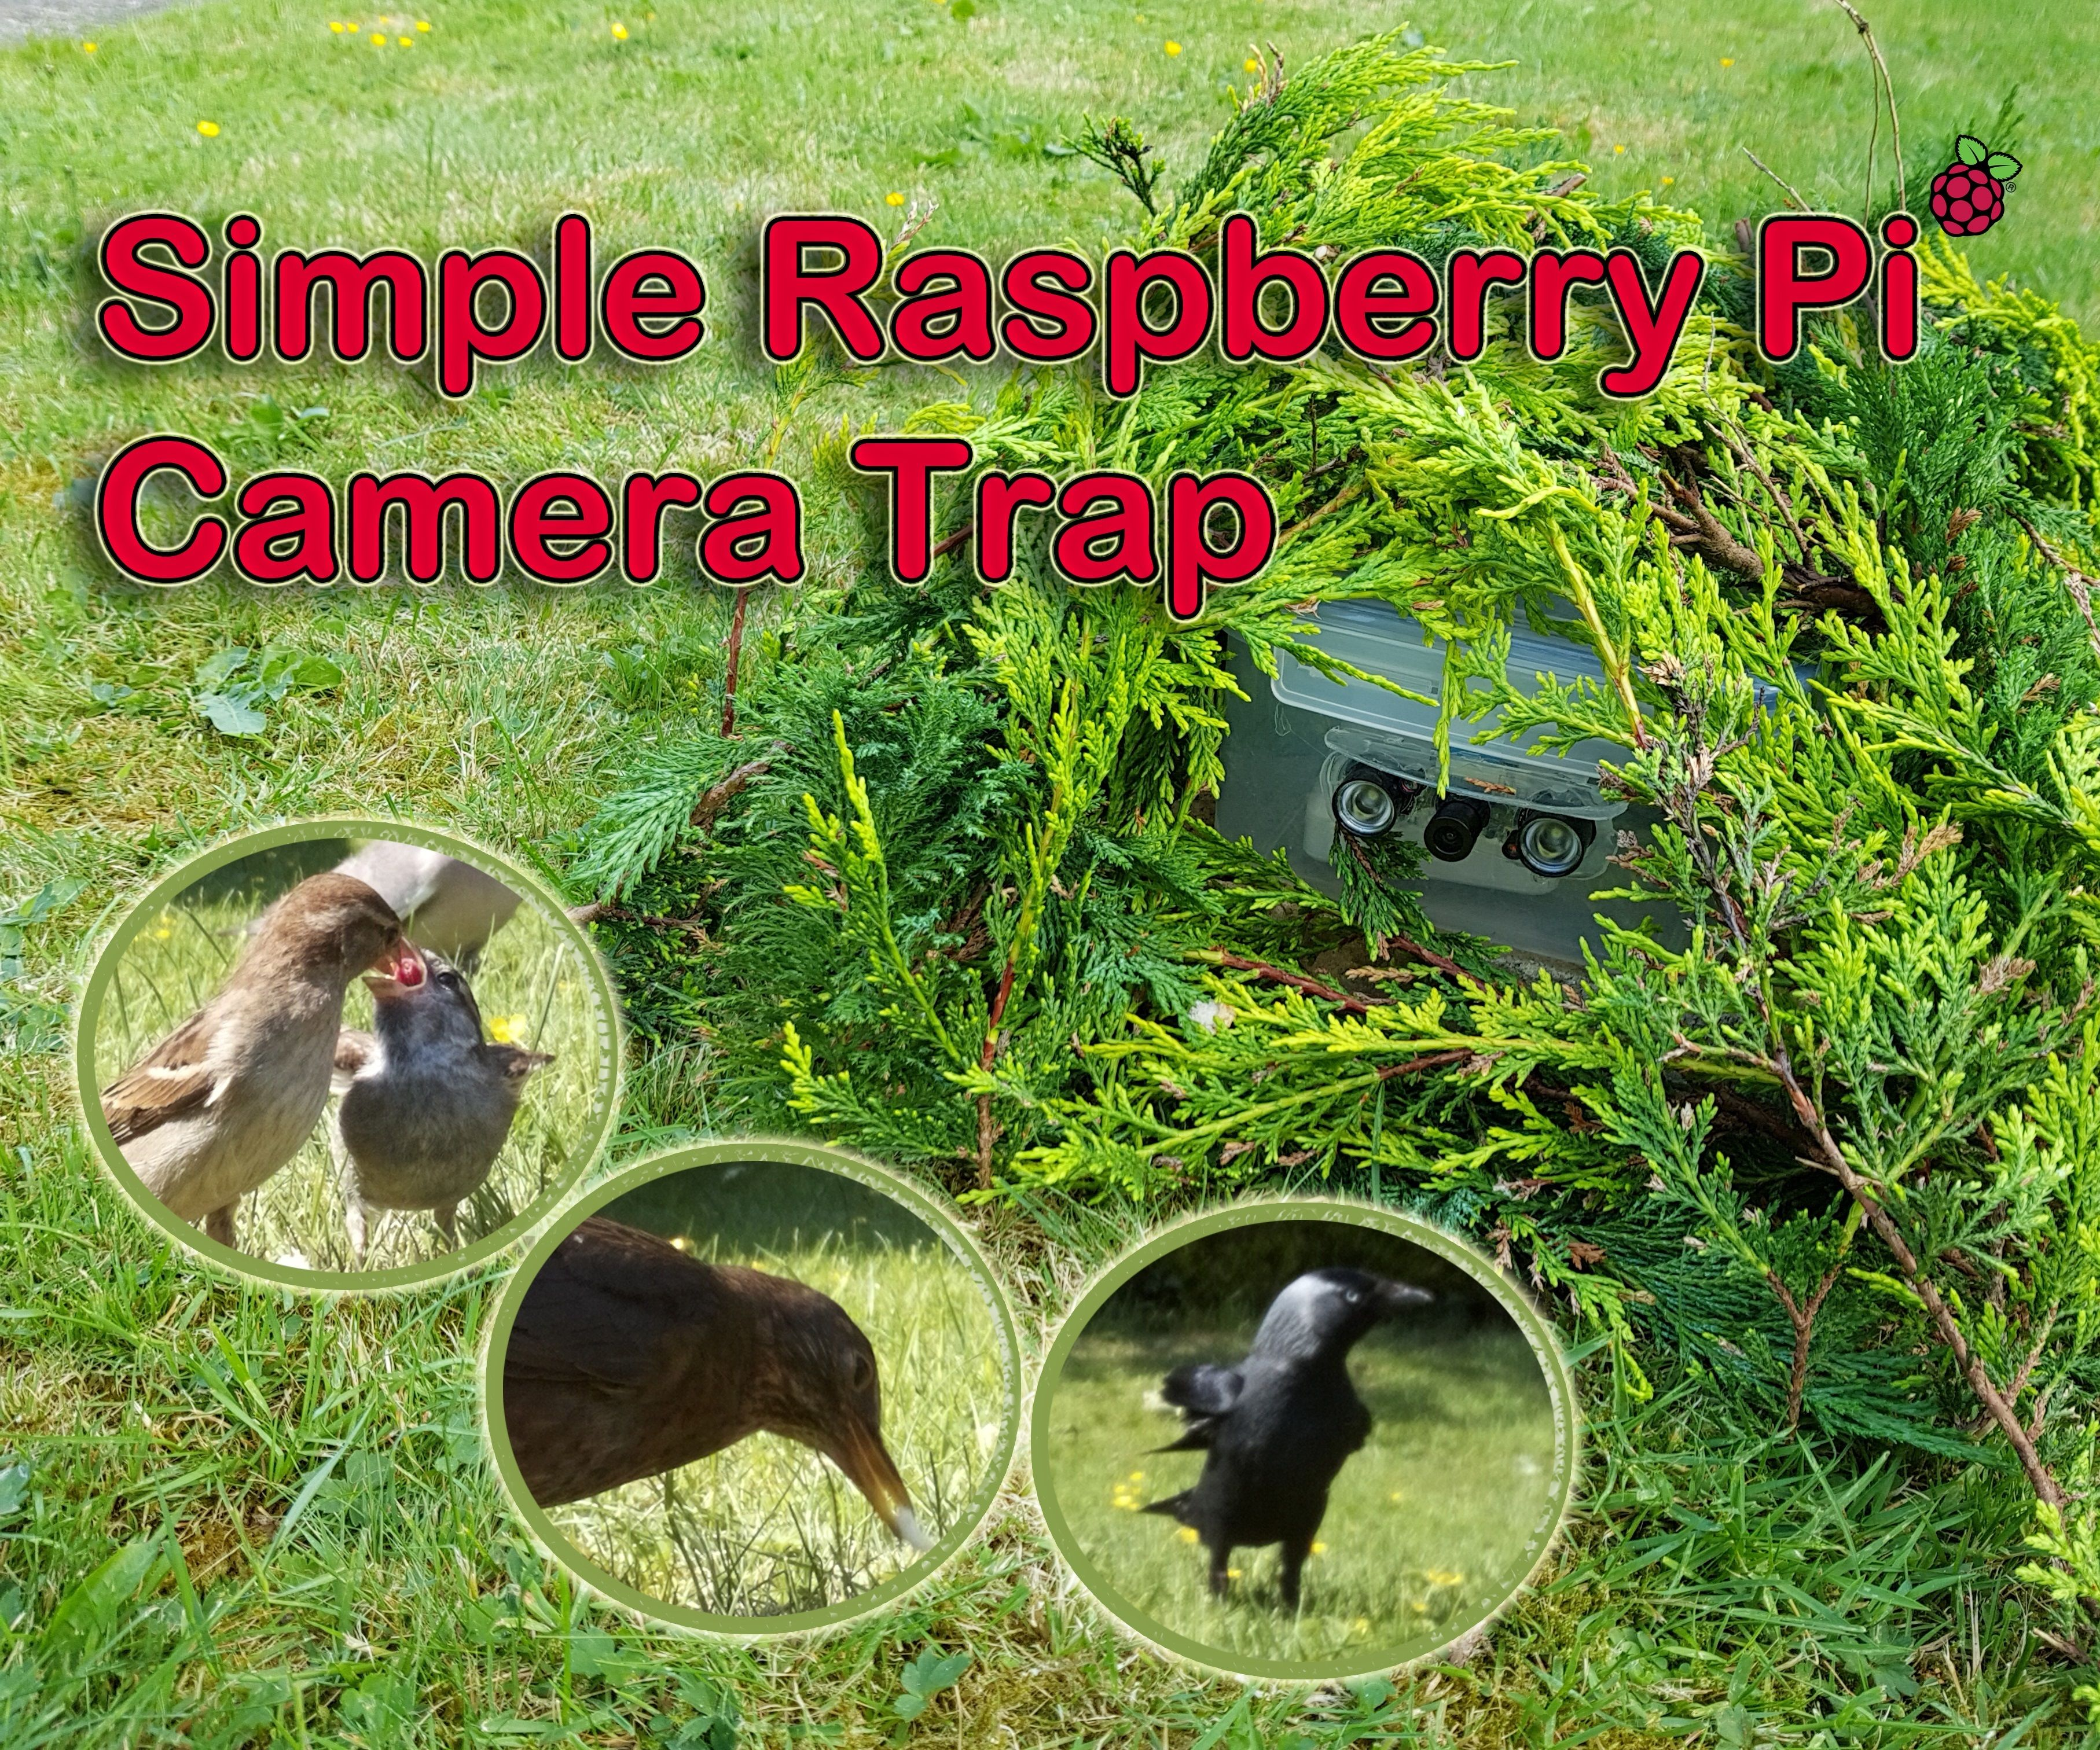 Simple Raspberry Pi Camera Trap Made From a Food Container: 6 Steps